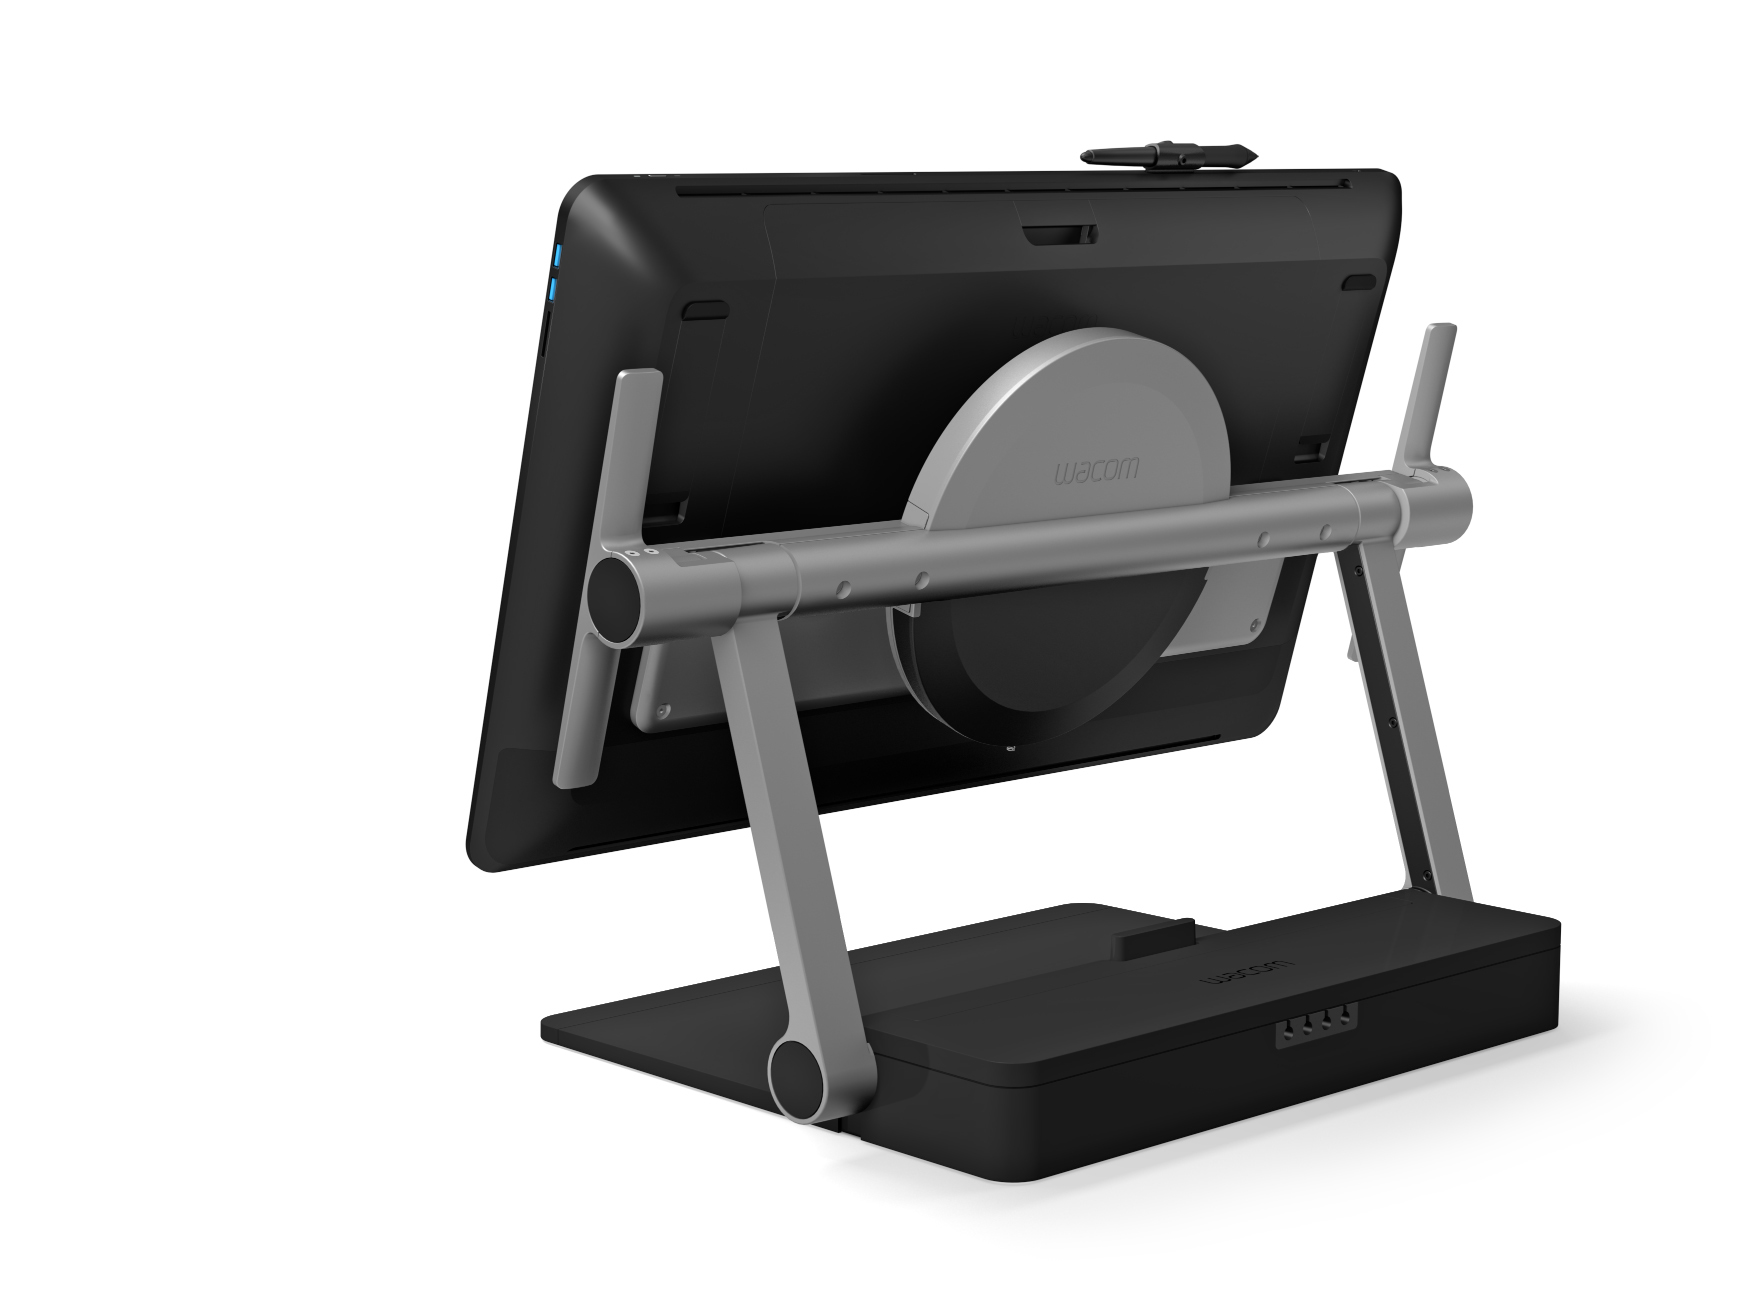 WACOM ACK62801K FLAT PANEL DESK MOUNT 61 CM (24